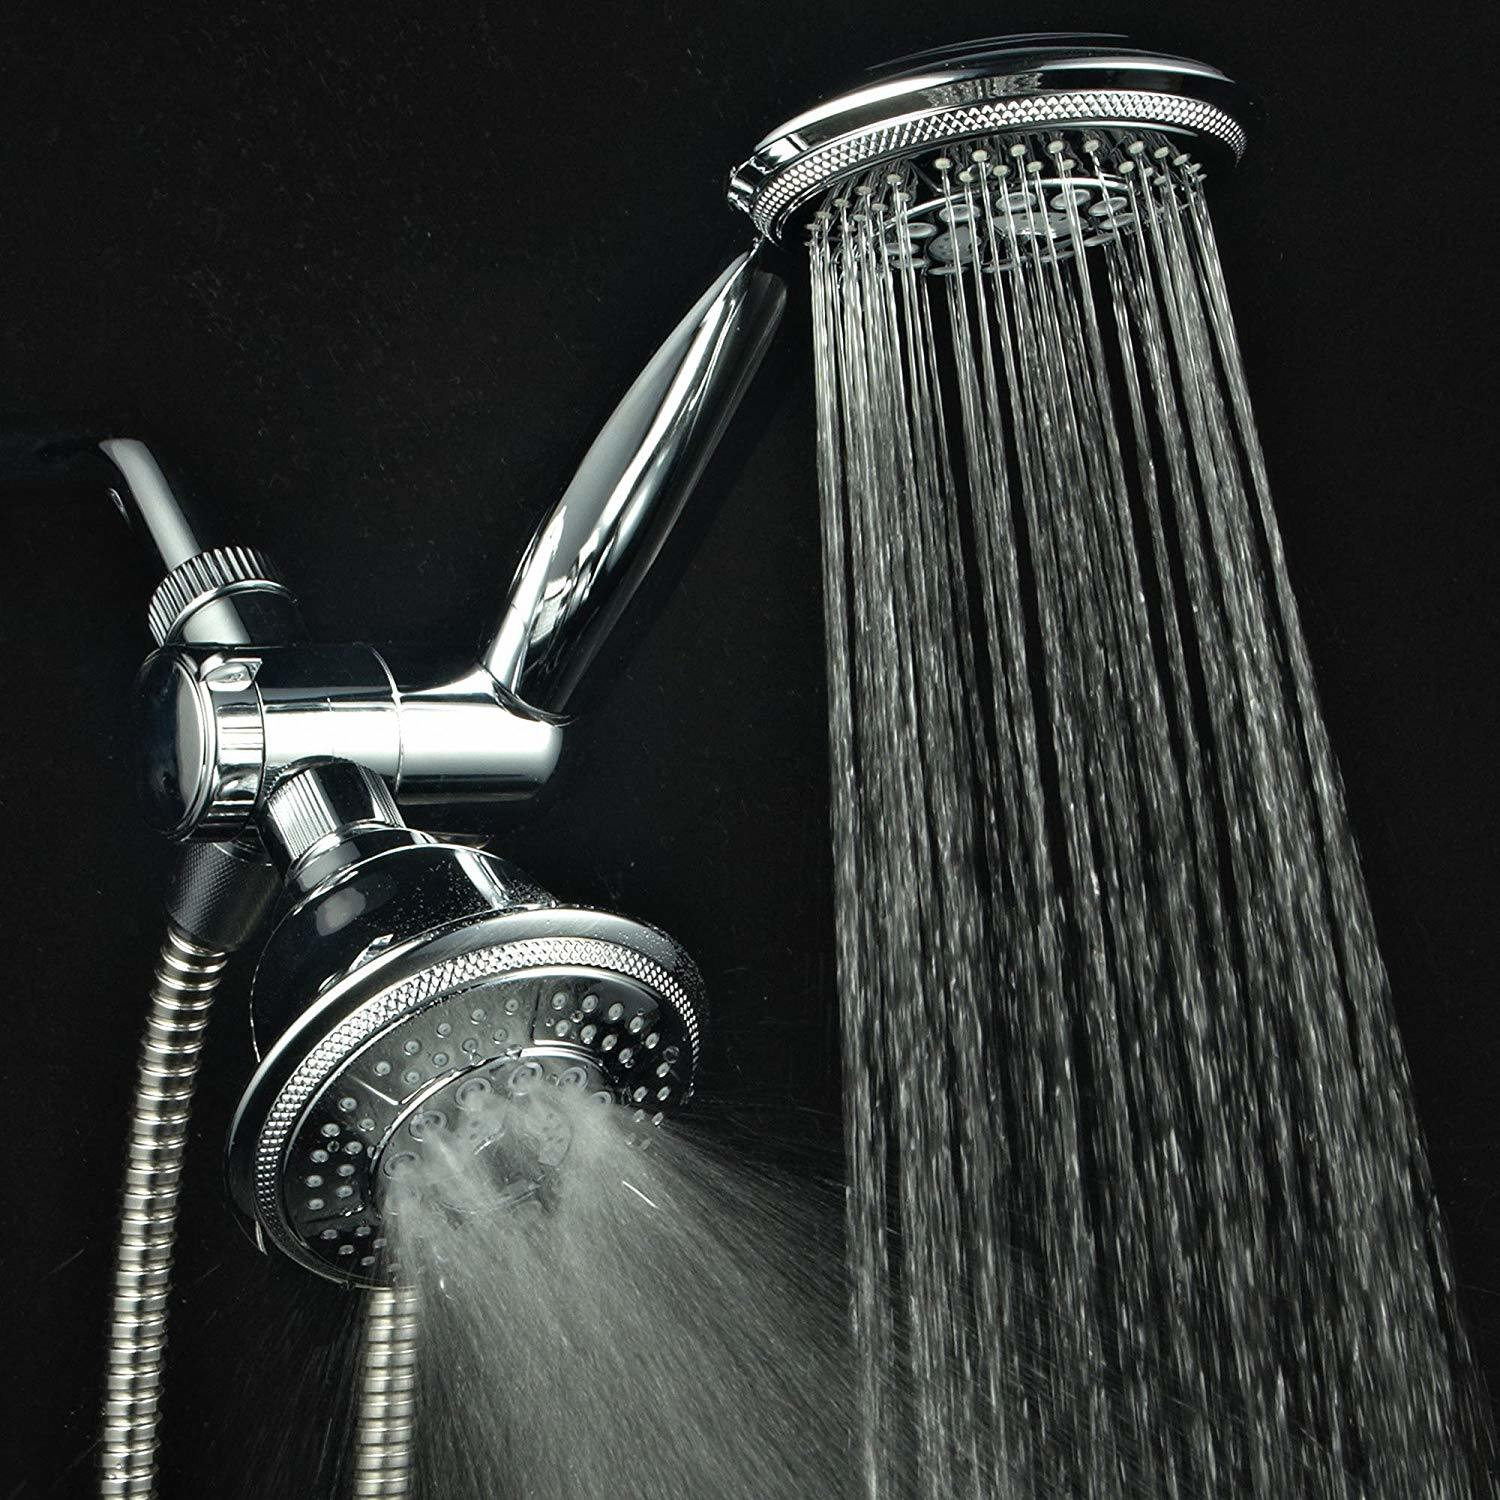 Hot Item 3 Way 8 Setting Rainfall Shower Head And Handheld Shower Combo Chrome Use Luxury 7 Inch Rain Showerhead Or 7 Function Hand Shower For